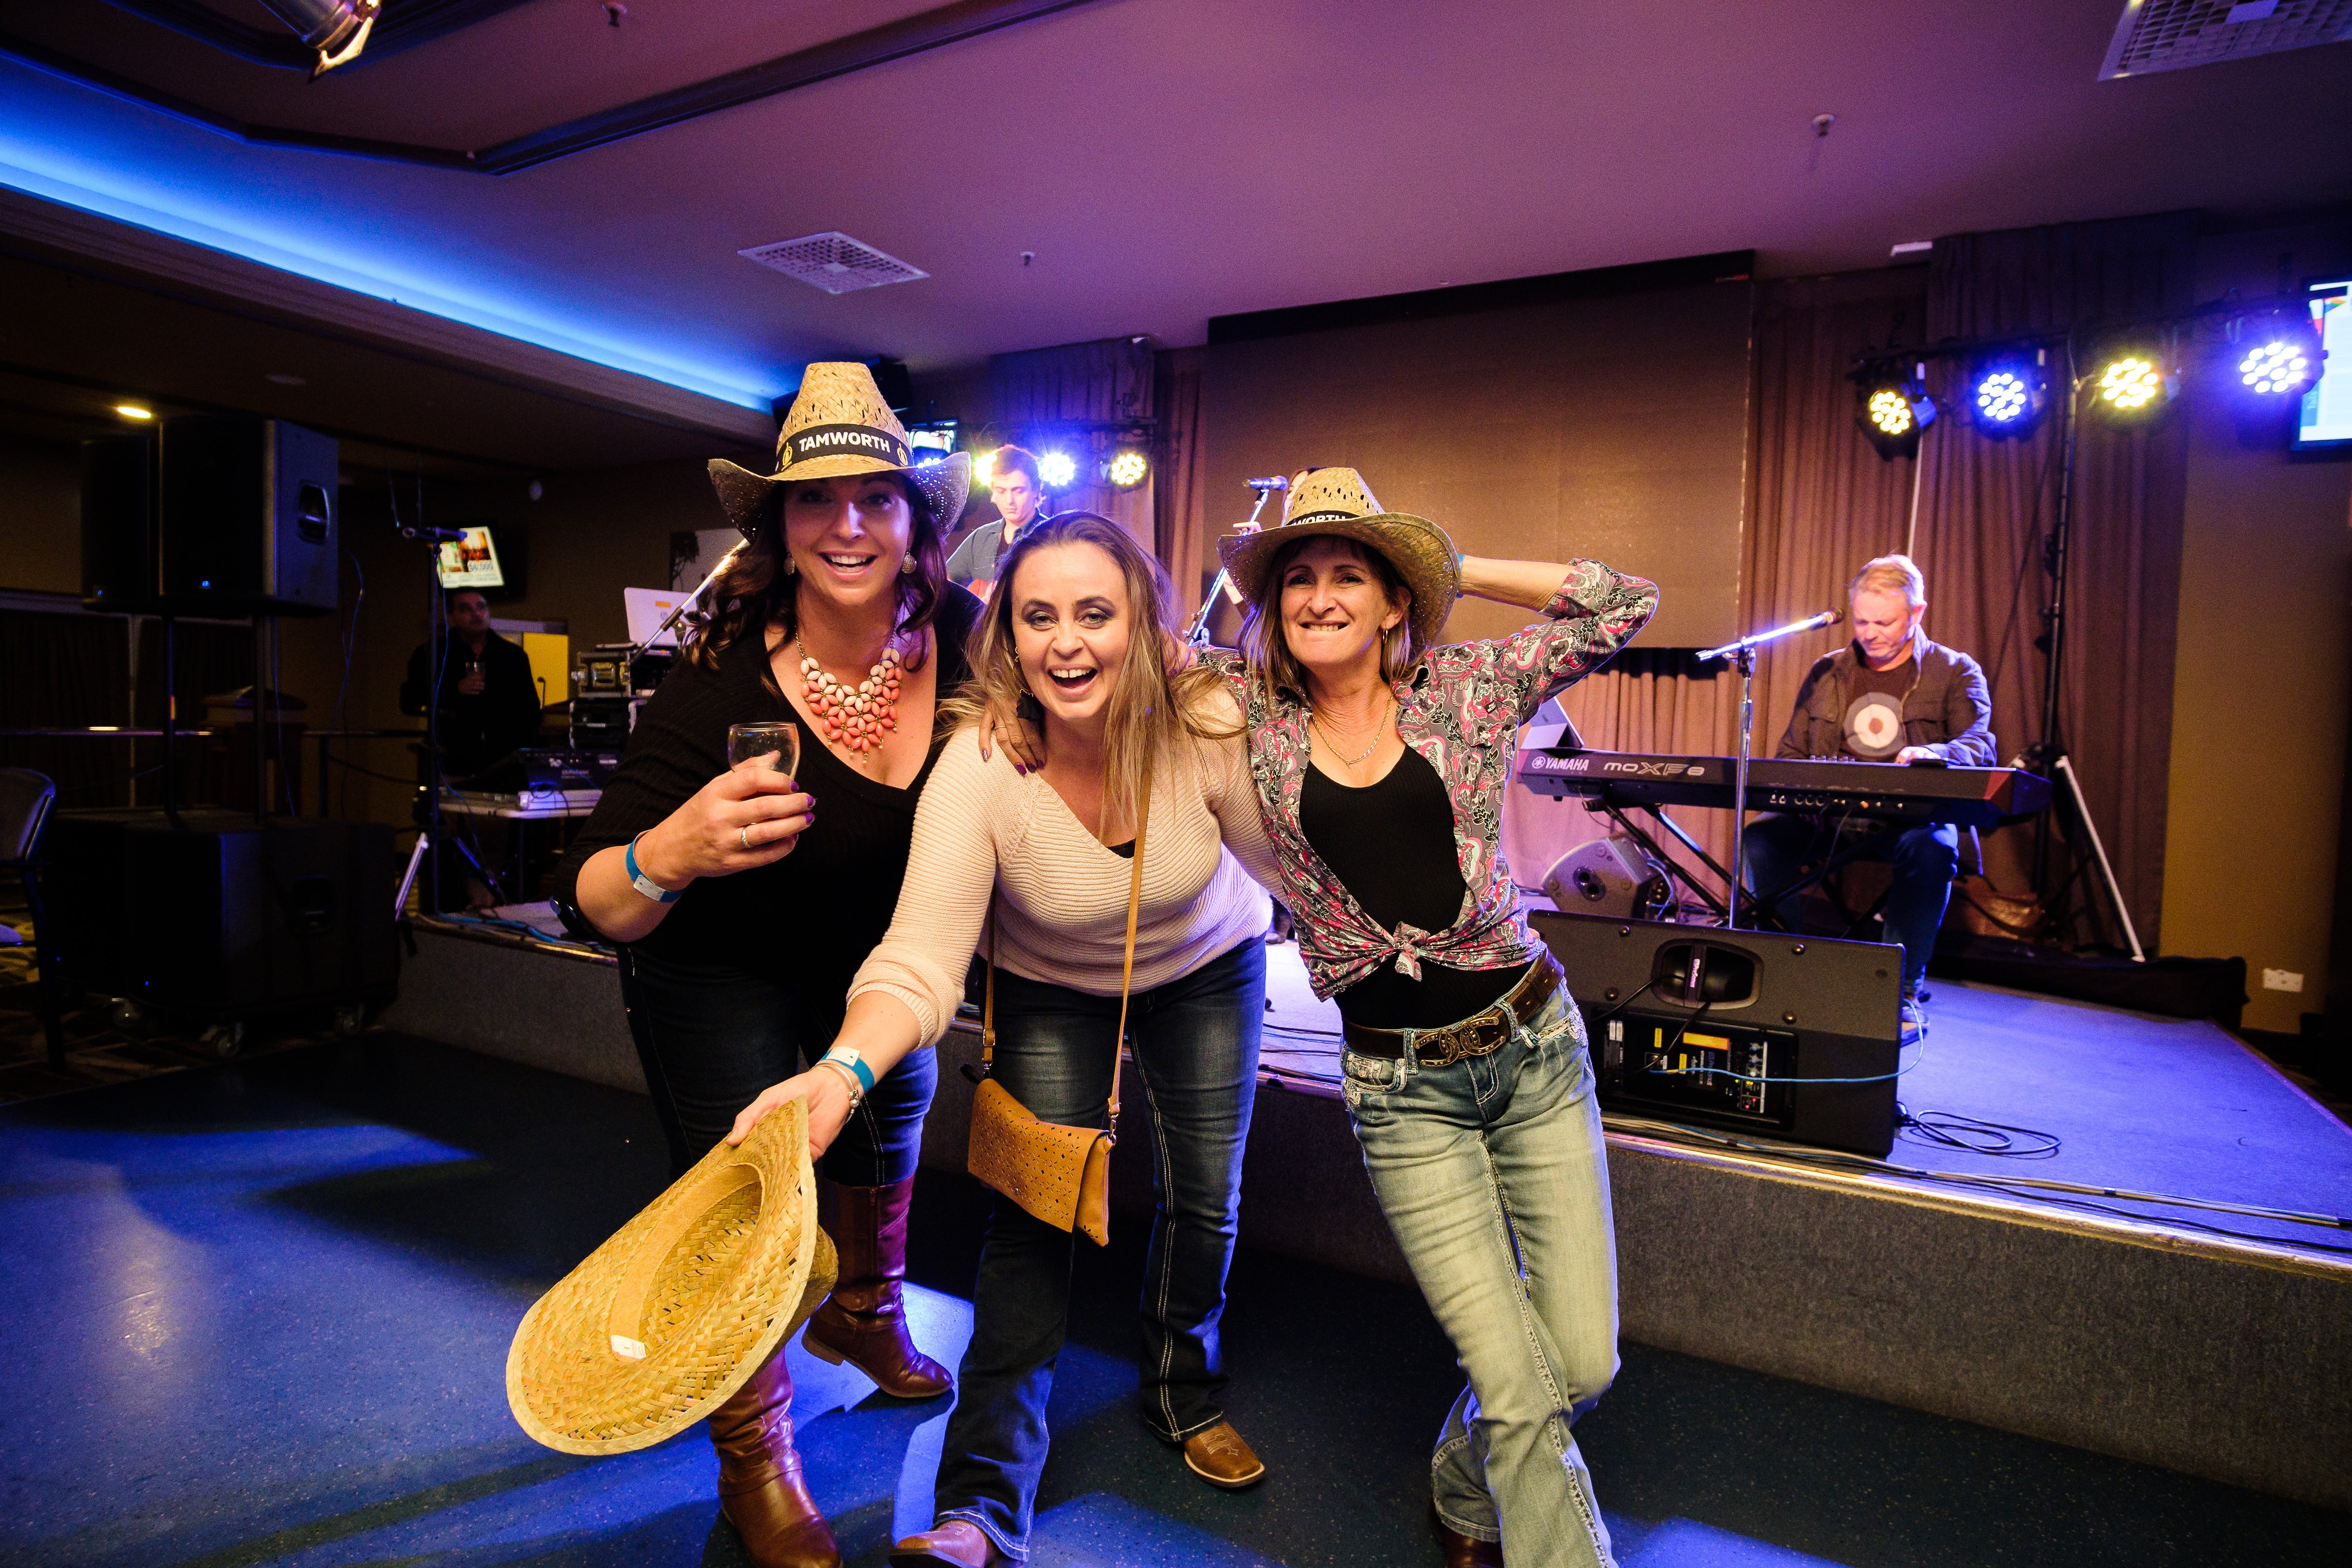 Hats Off to Country Music Festival - Accommodation Kalgoorlie